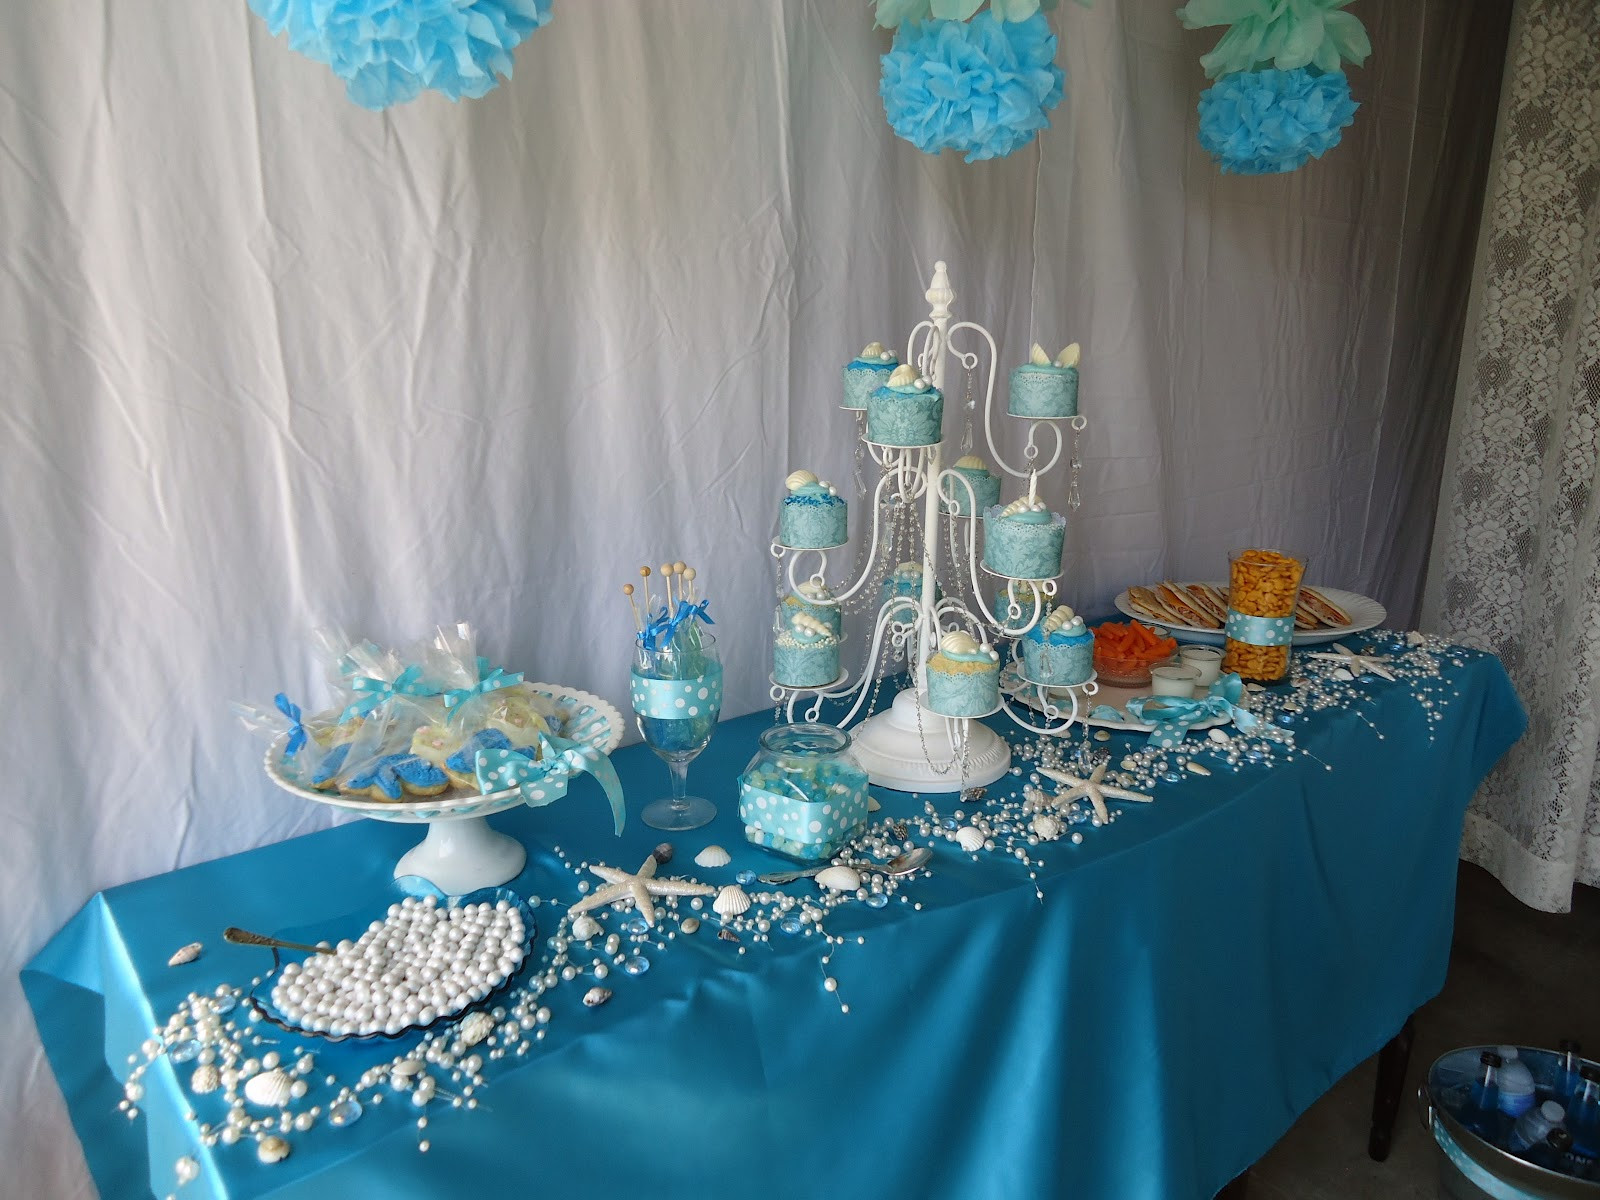 Best ideas about Mermaid Birthday Party Decorations . Save or Pin Tammy s Heart Mermaid Birthday Party Now.